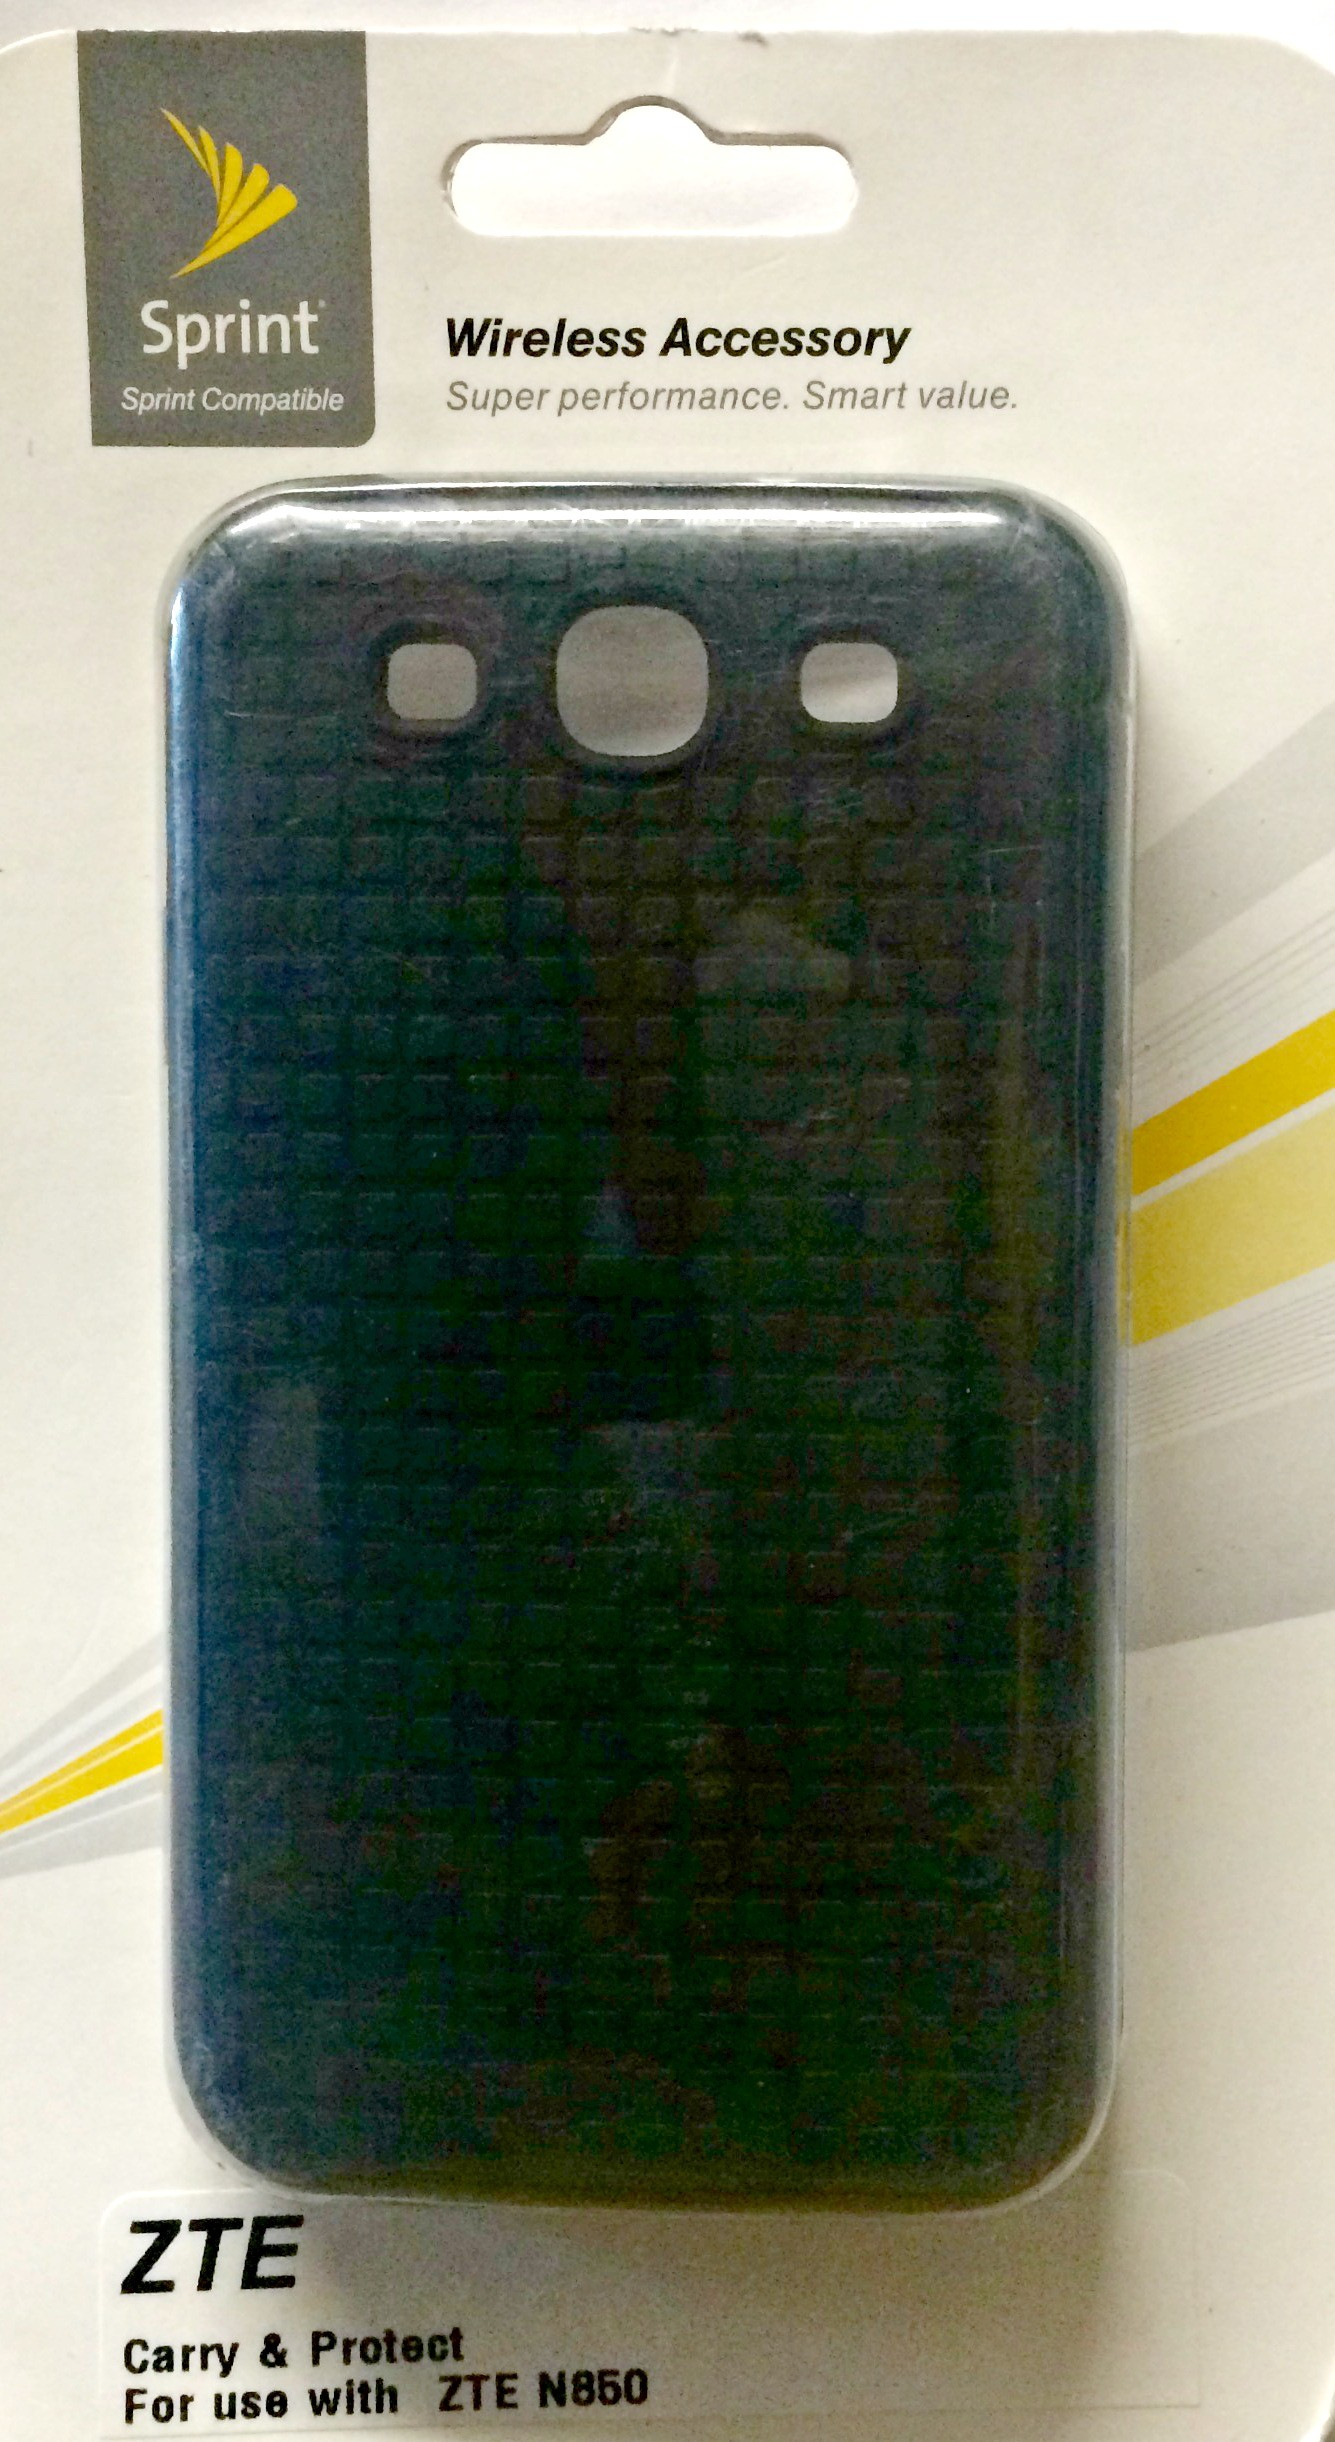 Silicone Phone Case For Sprint ZTE Fury N850 - Black